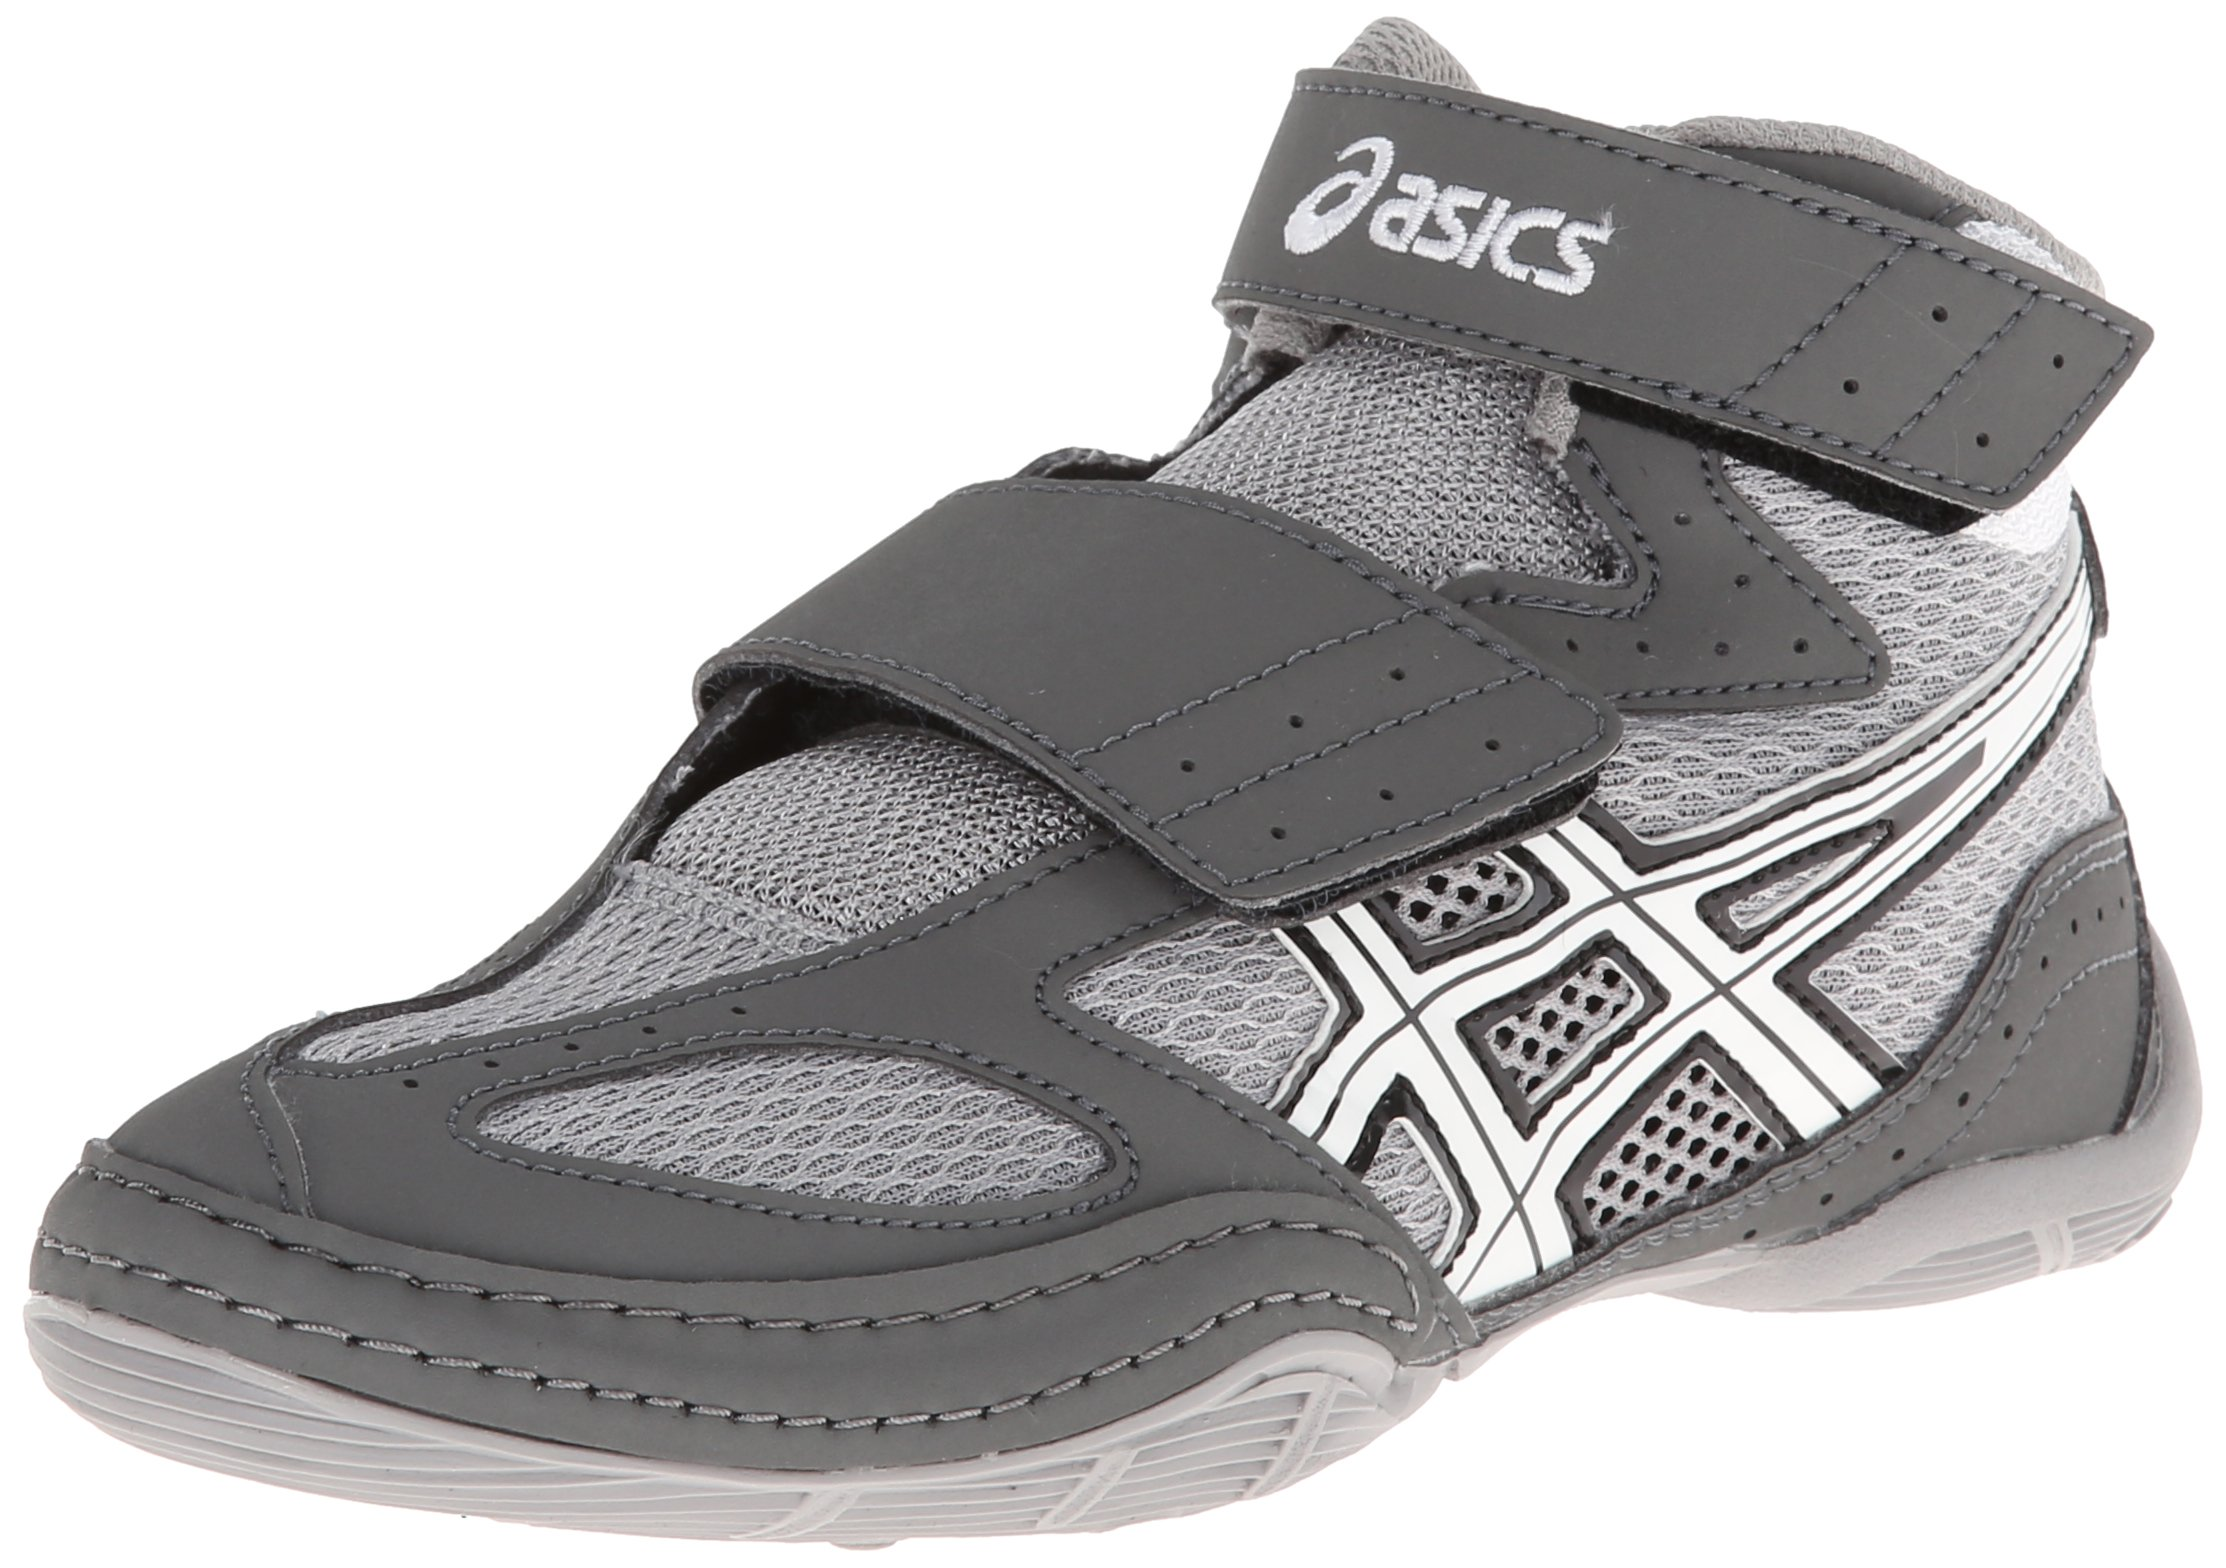 ASICS Matflex 4 GS Wrestling Shoe (Toddler/Little Kid/Big Kid), Granite/White/Black, 12 M US Little Kid